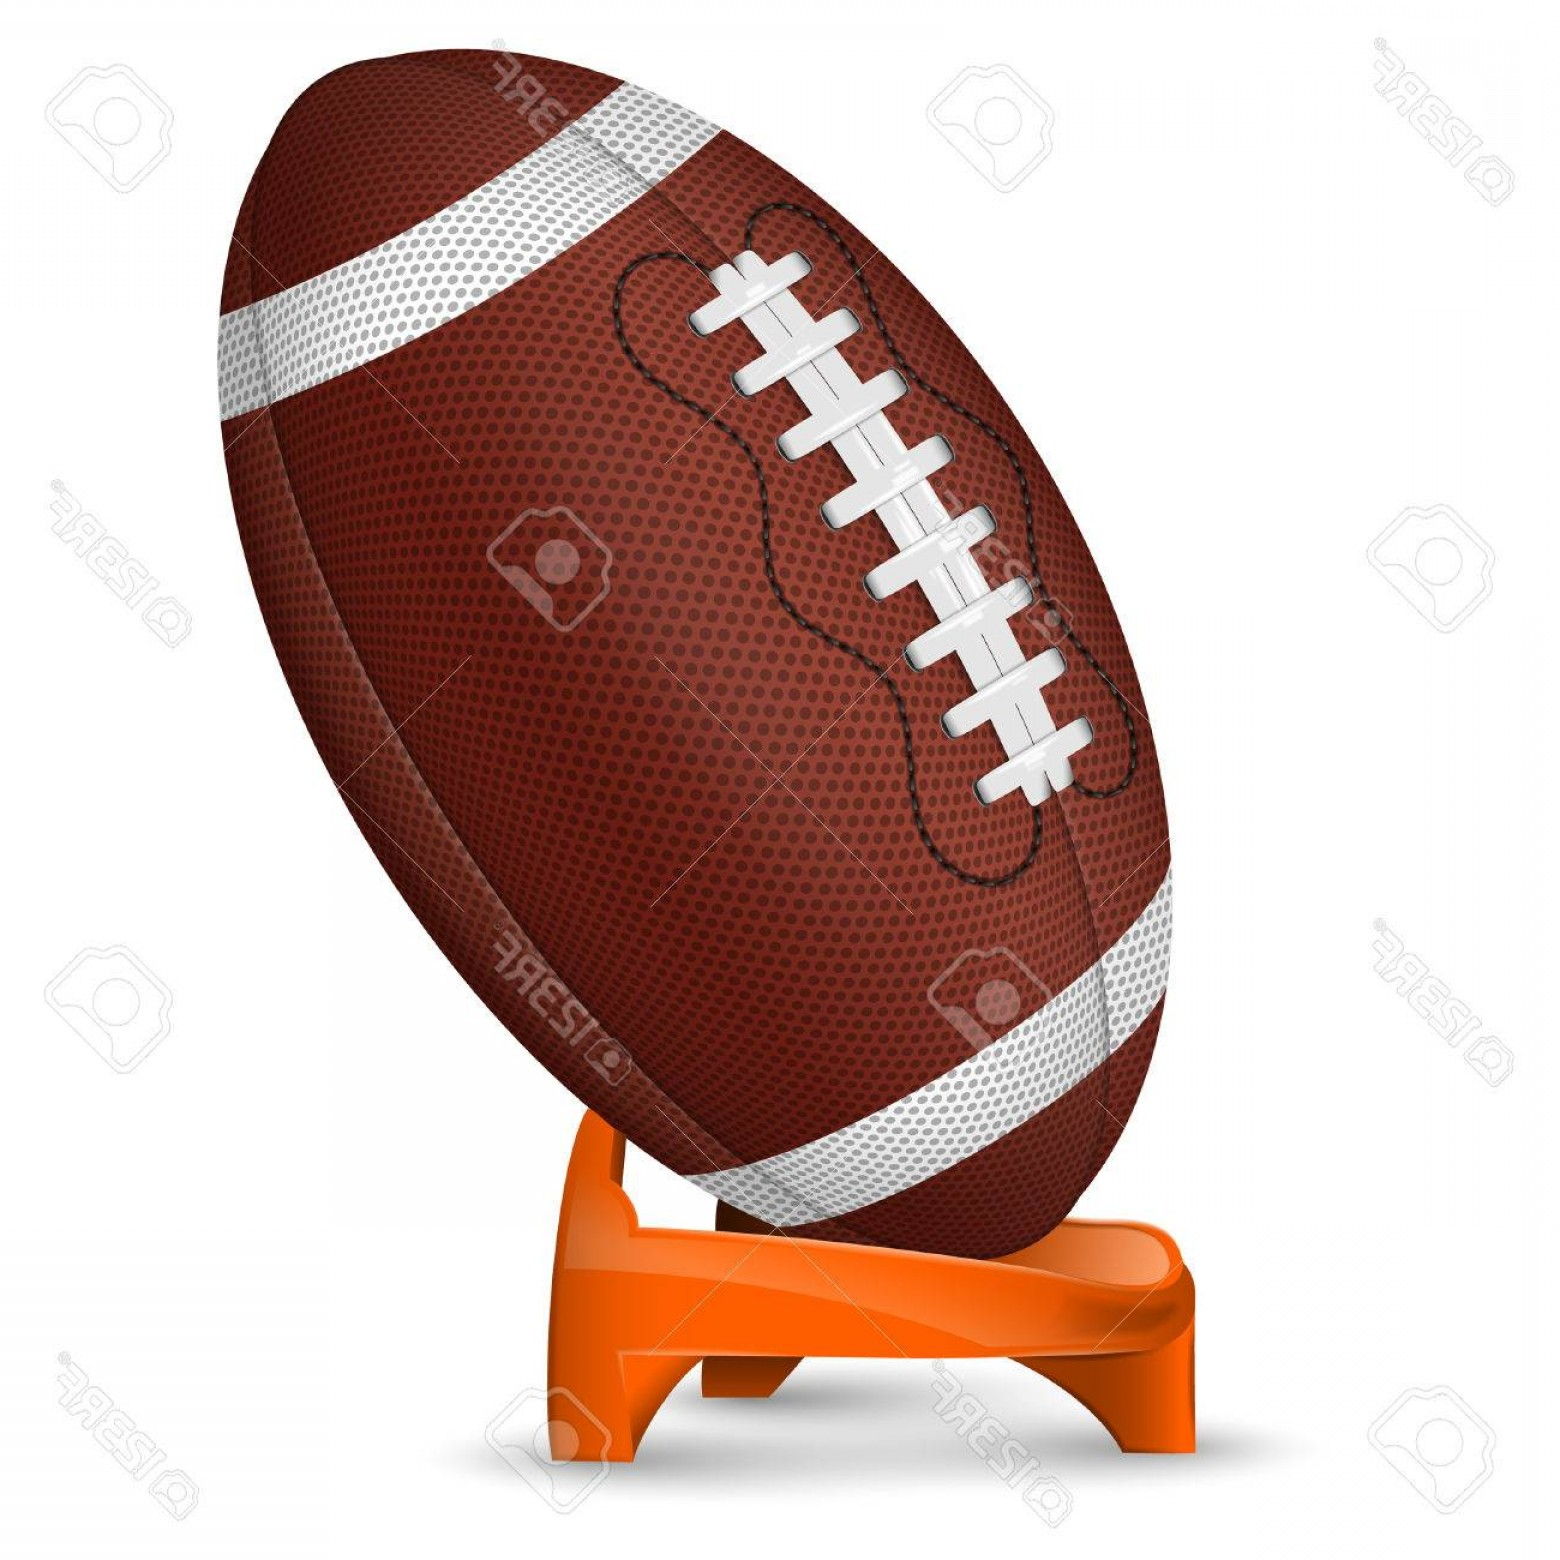 High Res Vector American Football: Photostock Vector American Football Poster With Ball And Stand Vector Icon Isolated On White Background